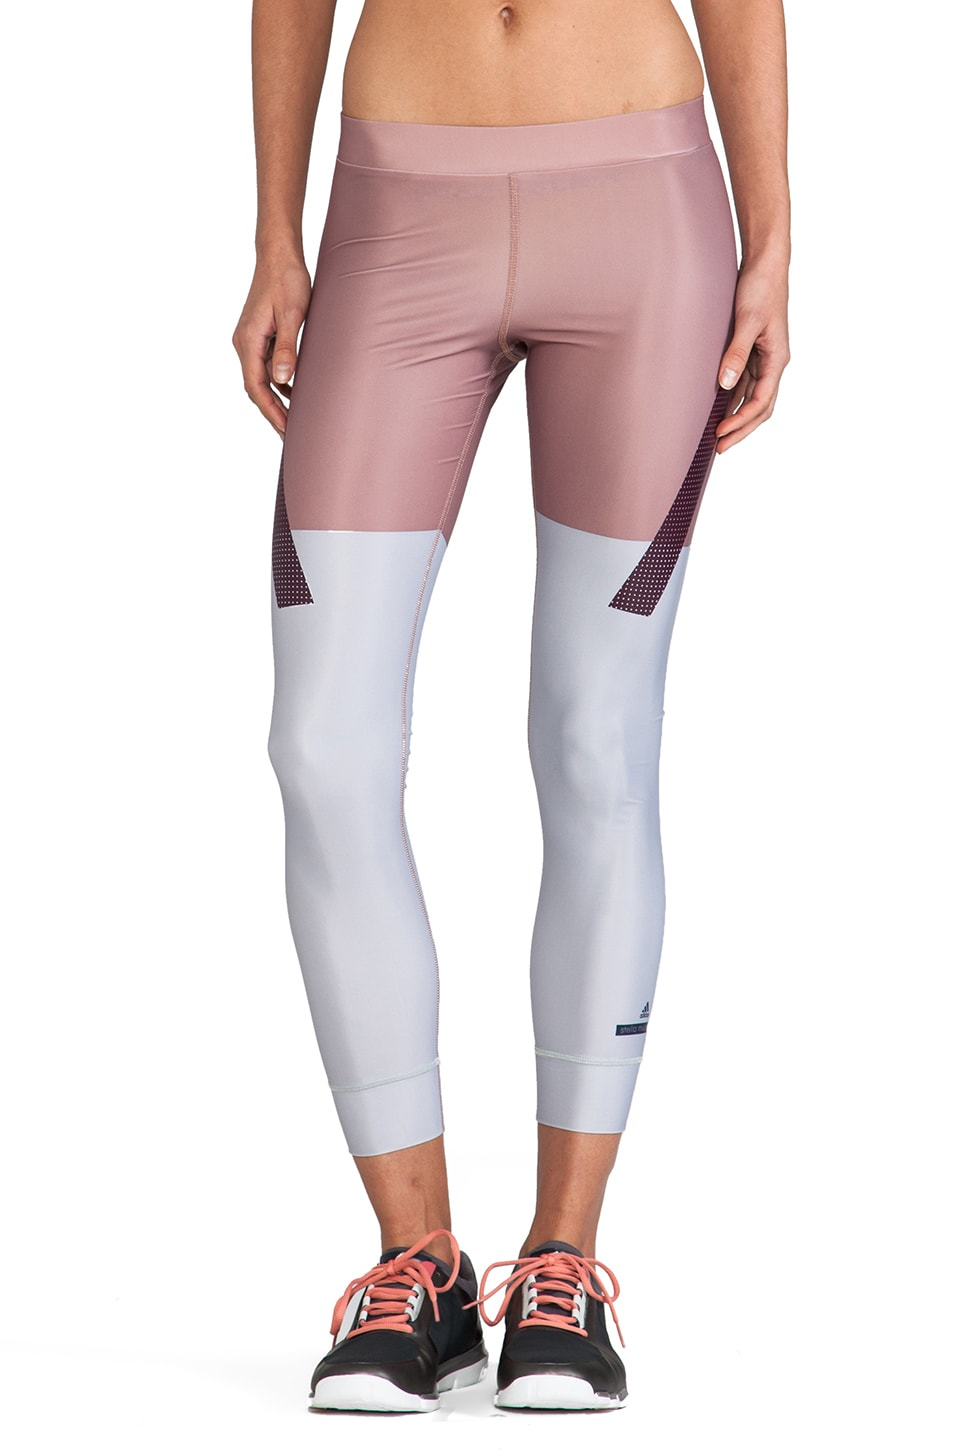 adidas by Stella McCartney Run TF Tight Legging in Tanned Sand & Universe